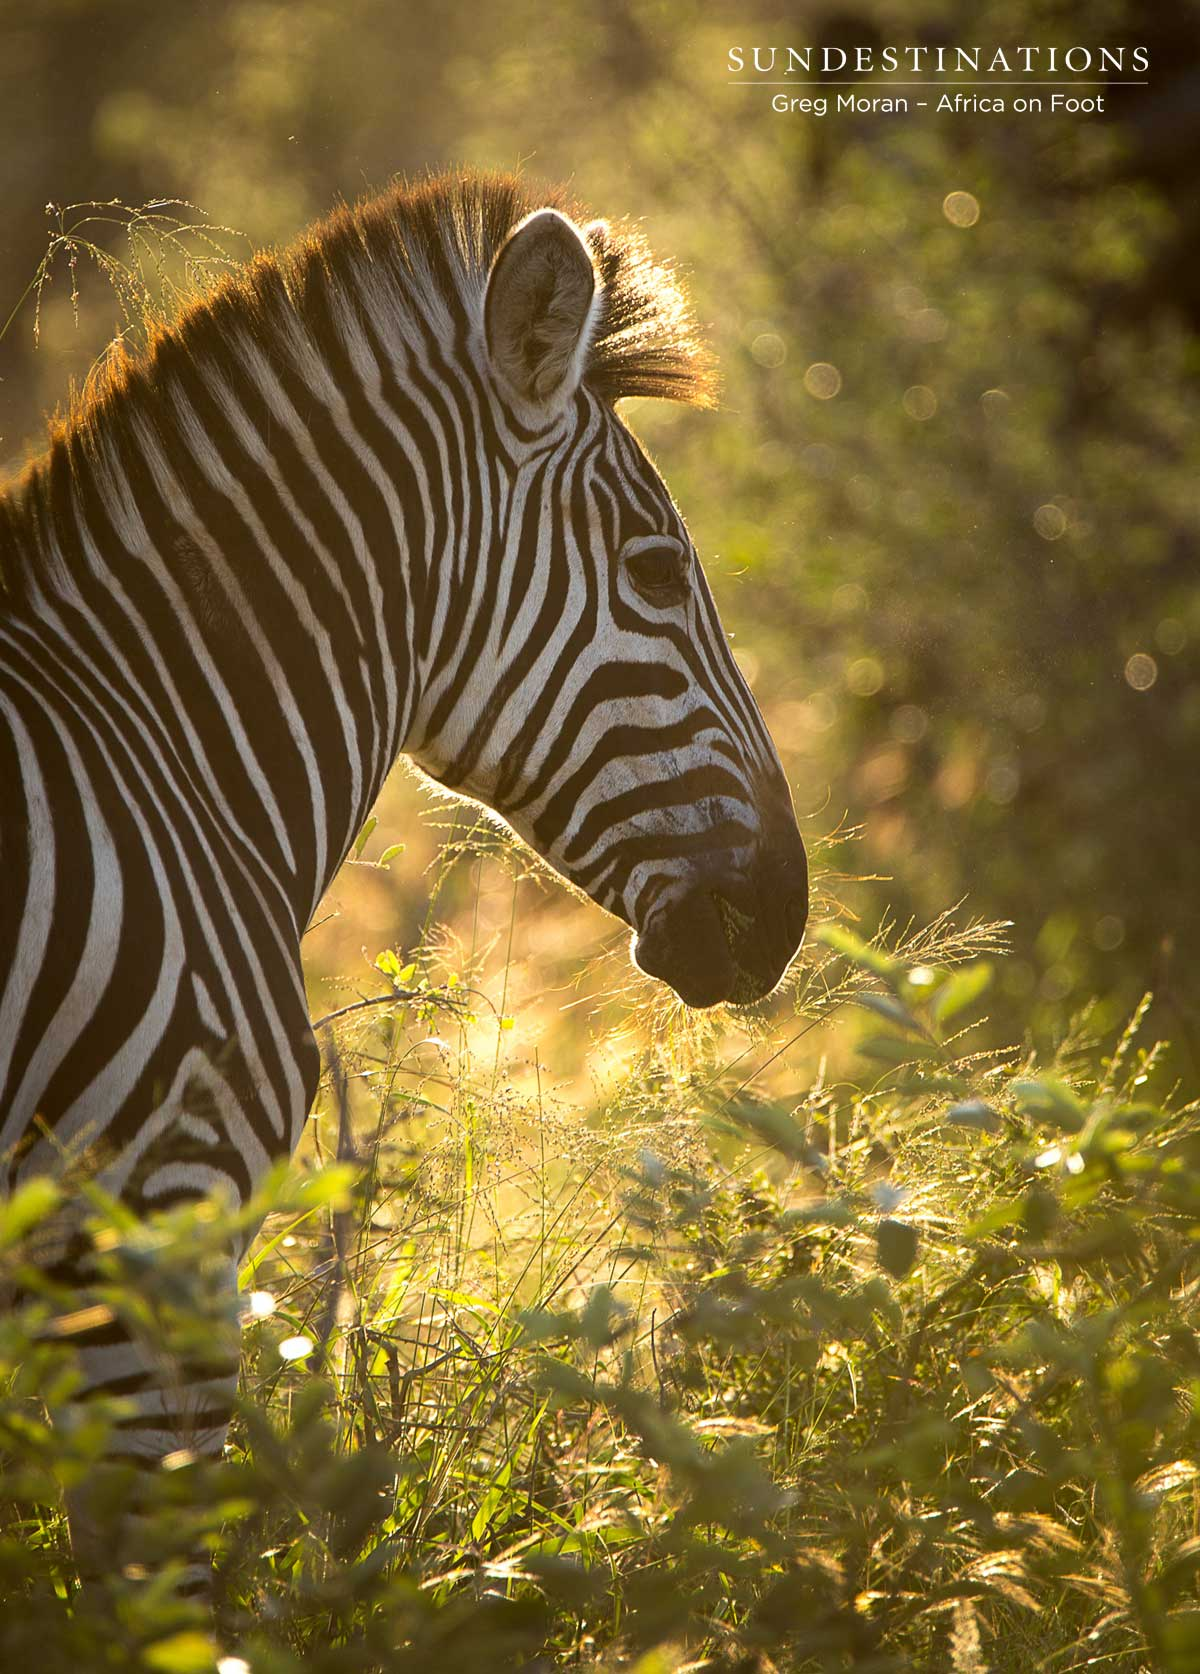 Zebra Africa on Foot